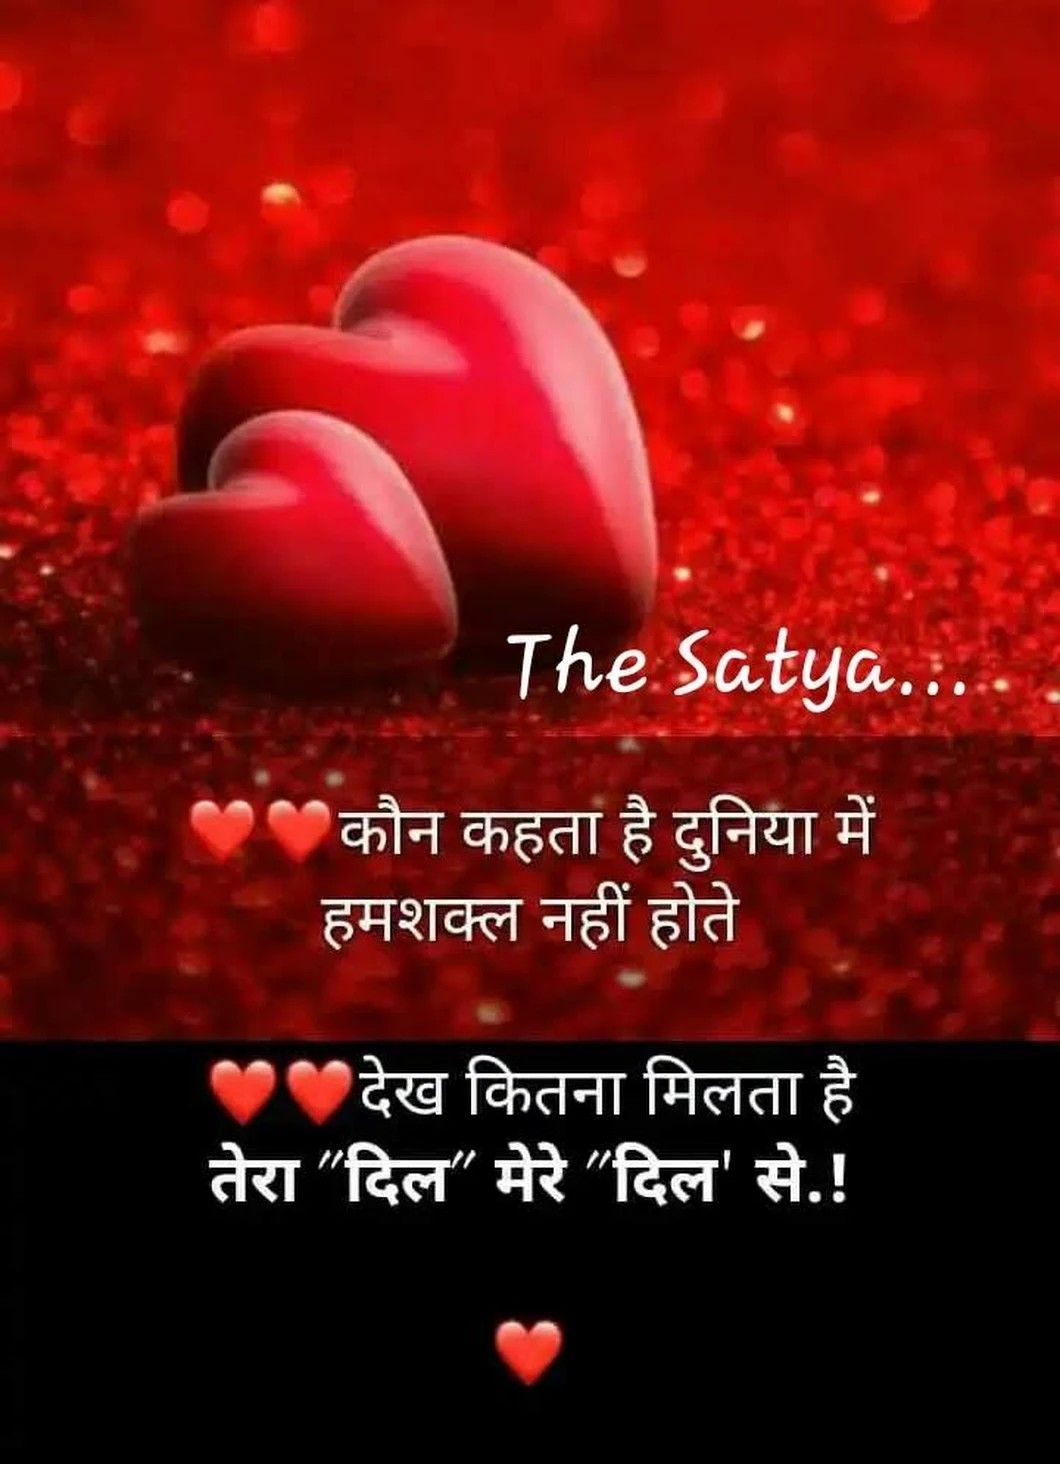 Sanjana V Singh Hindi shayari love, Friendship quotes